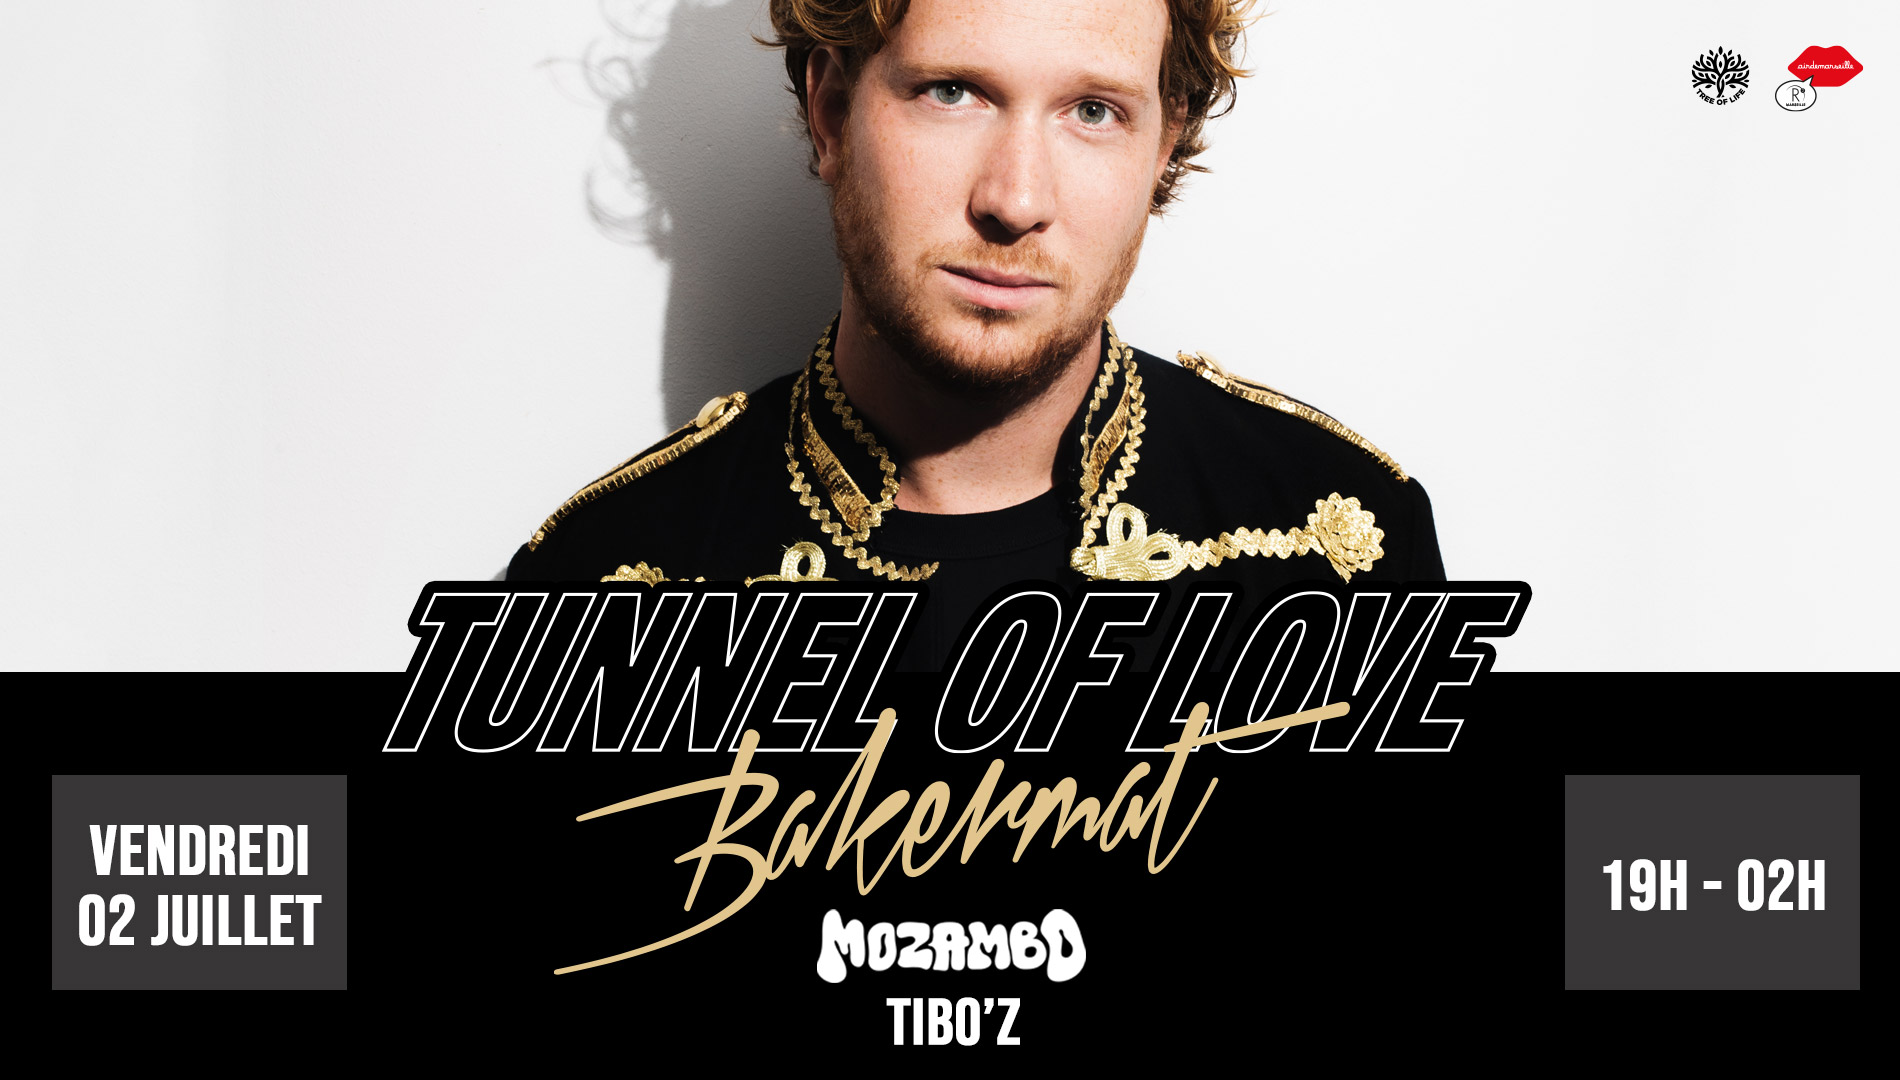 R2 Rooftop x Tunnel Of Love Opening Party! BAKERMAT DJ set + Live Sax